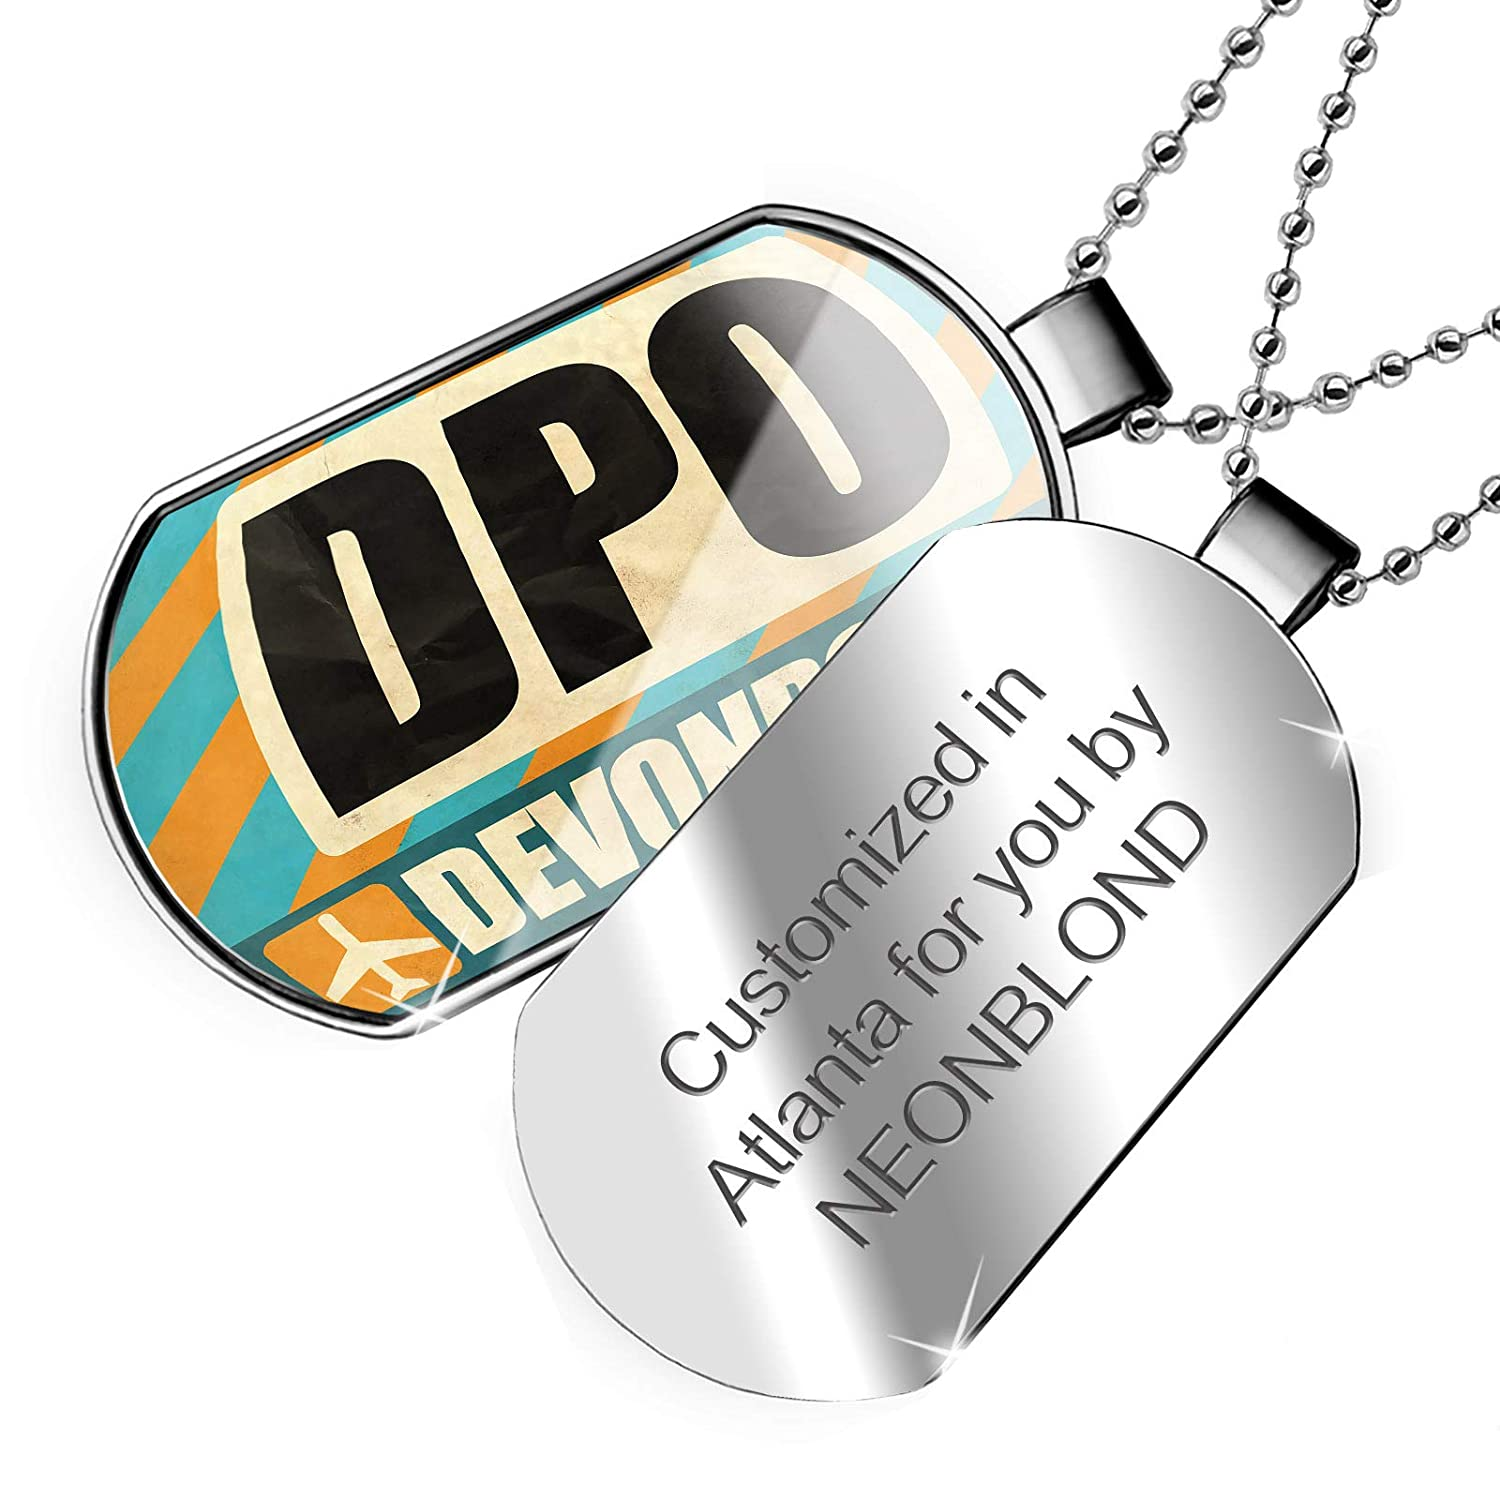 NEONBLOND Personalized Name Engraved Airportcode DPO Devonport Dogtag Necklace